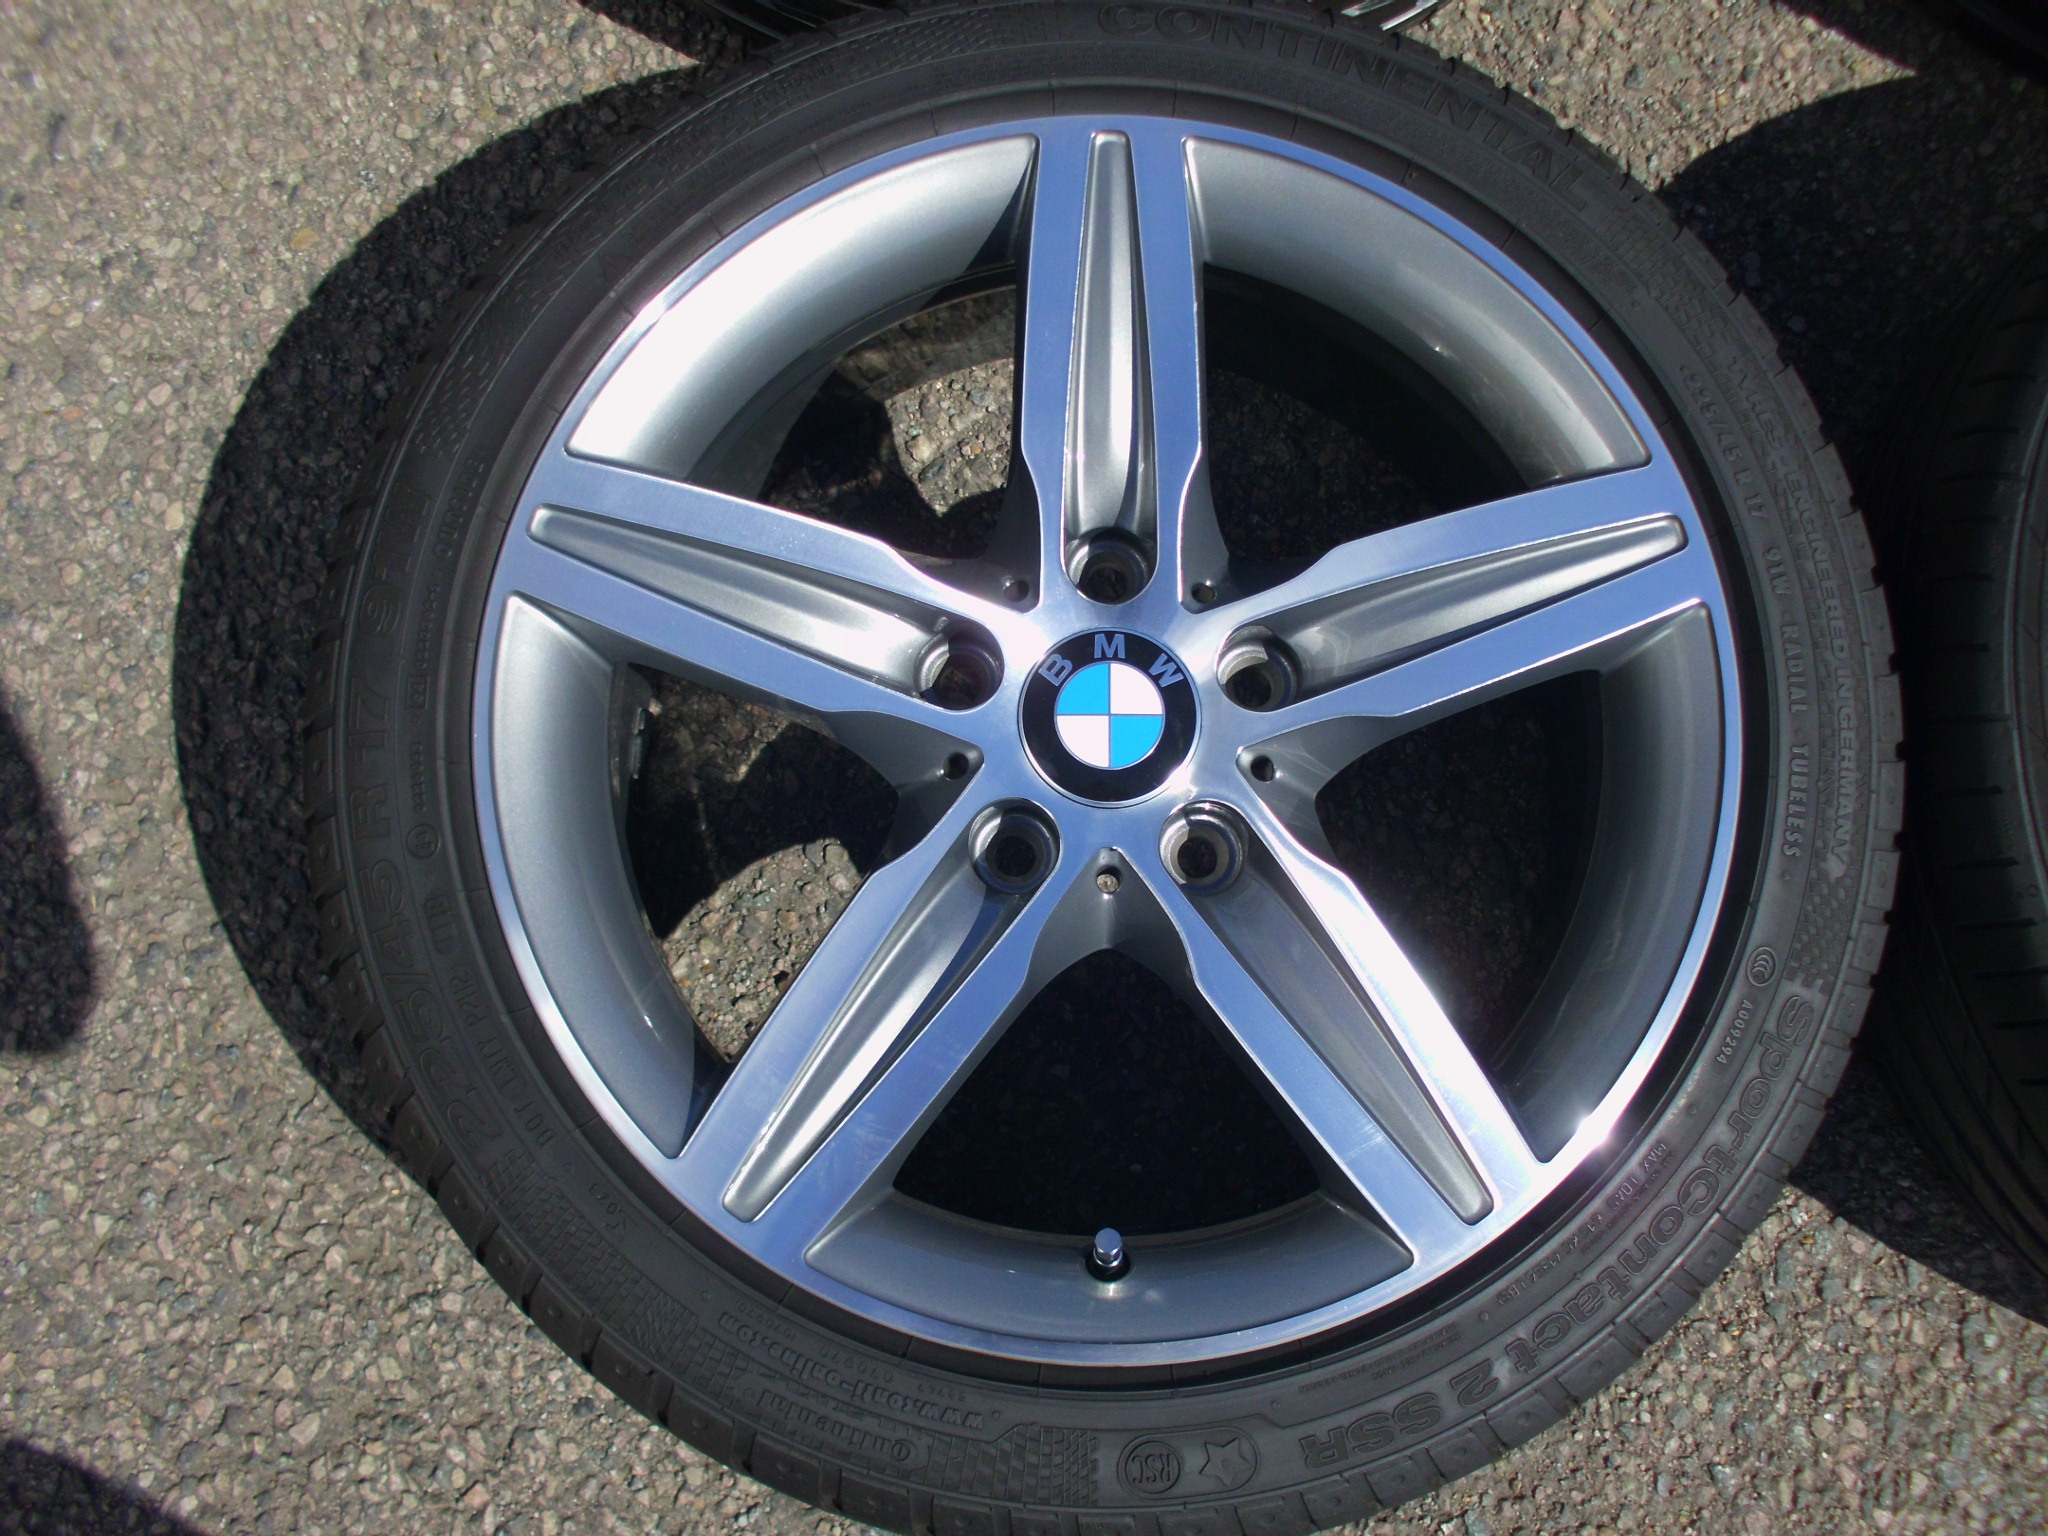 "USED 17"" GENUINE BMW STYLE 379 1 SERIES 5 SPOKE ALLOY WHEELS,FULLY REFURBED GUNMETAL/POLISHED, INC VERY GOOD RUNFLAT TYRES"